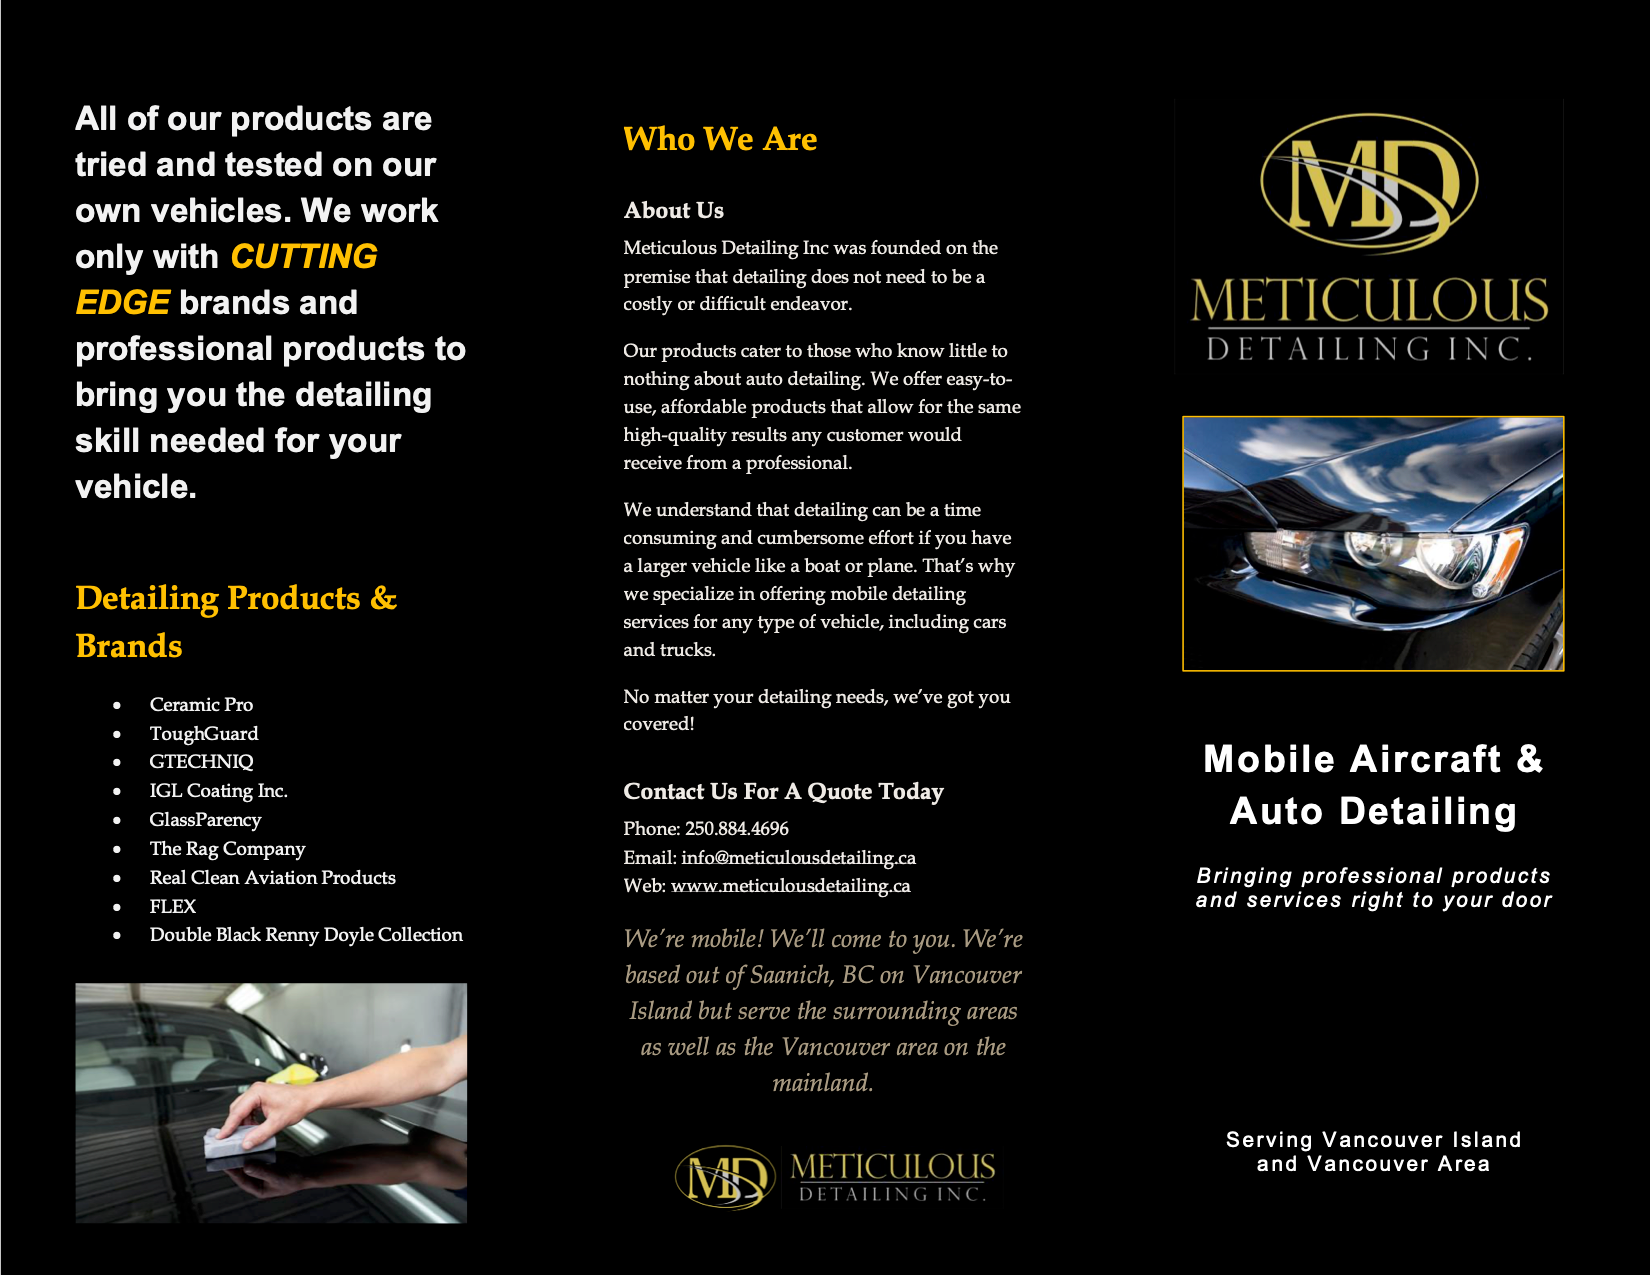 Outside of tri-fold brochure with information about Meticulous Detailing.